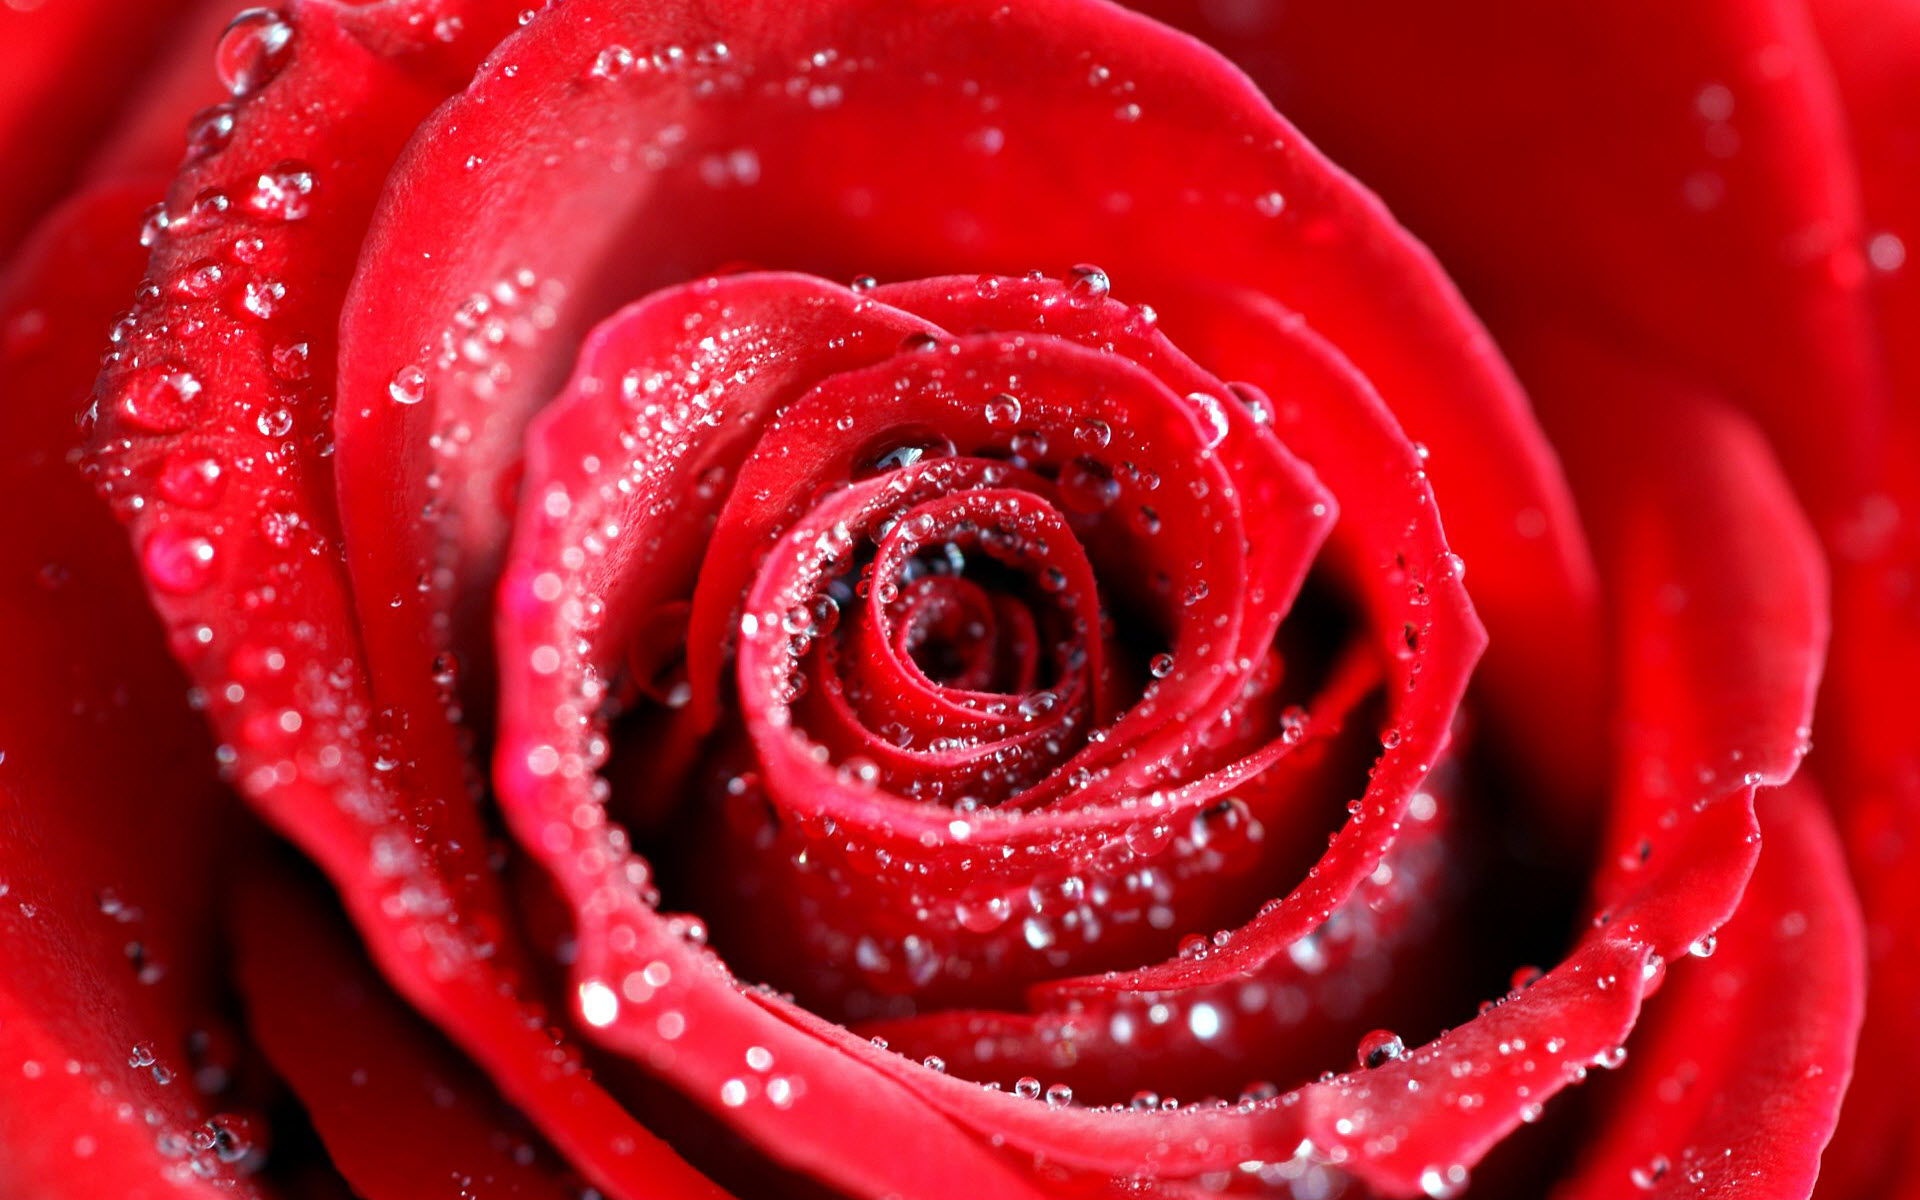 Water Drops On Red Rose Wallpapers | HD Wallpapers Wallpaper